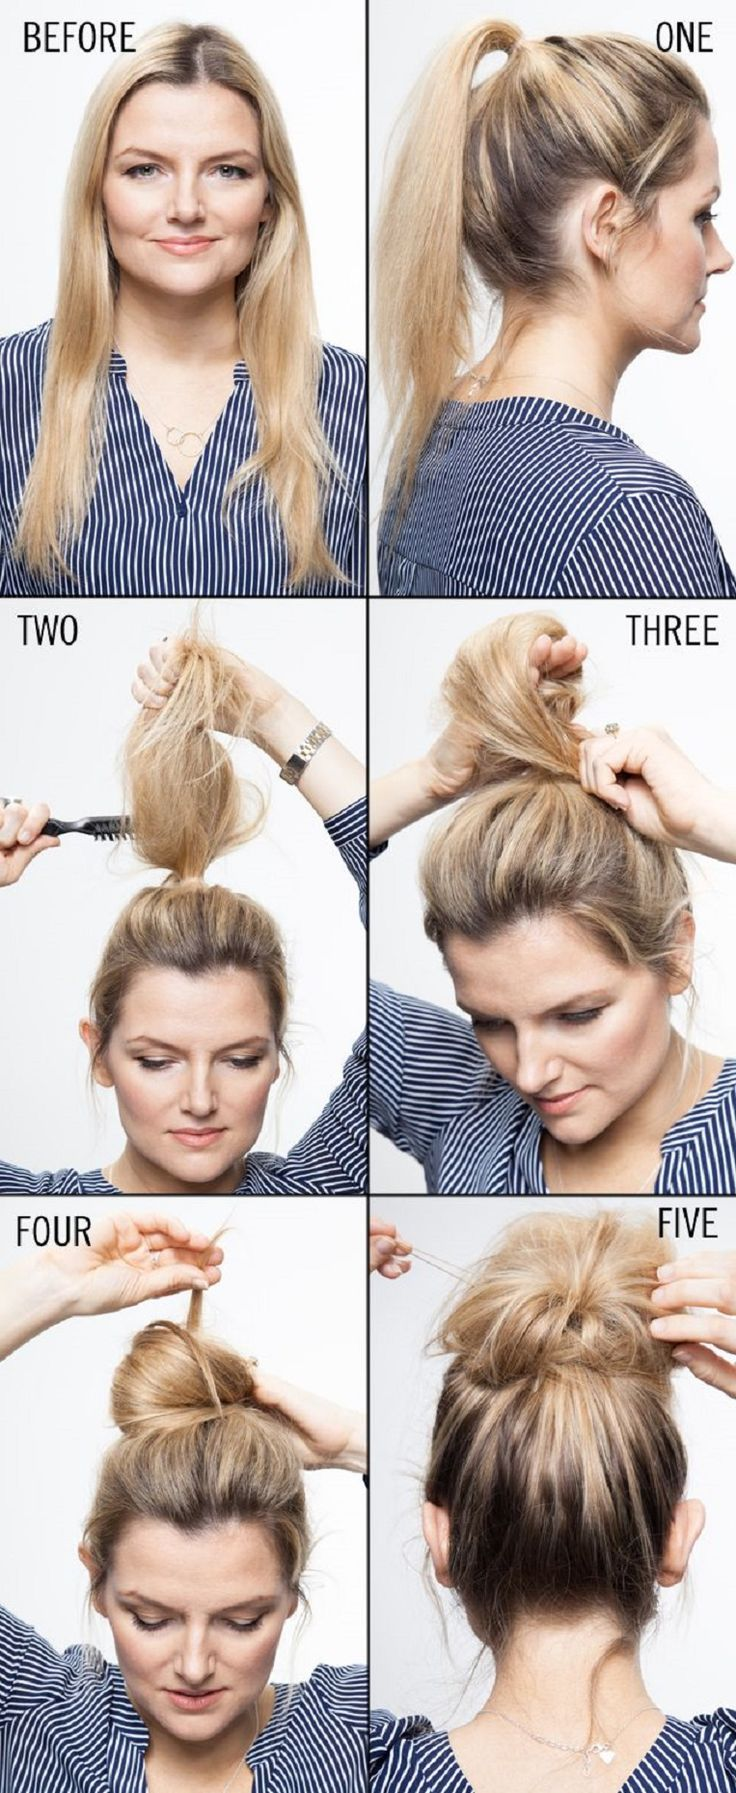 Hair Howto Styling A Topknot 15 Messy Hairstyle Tutorials From Pinterest To  Master